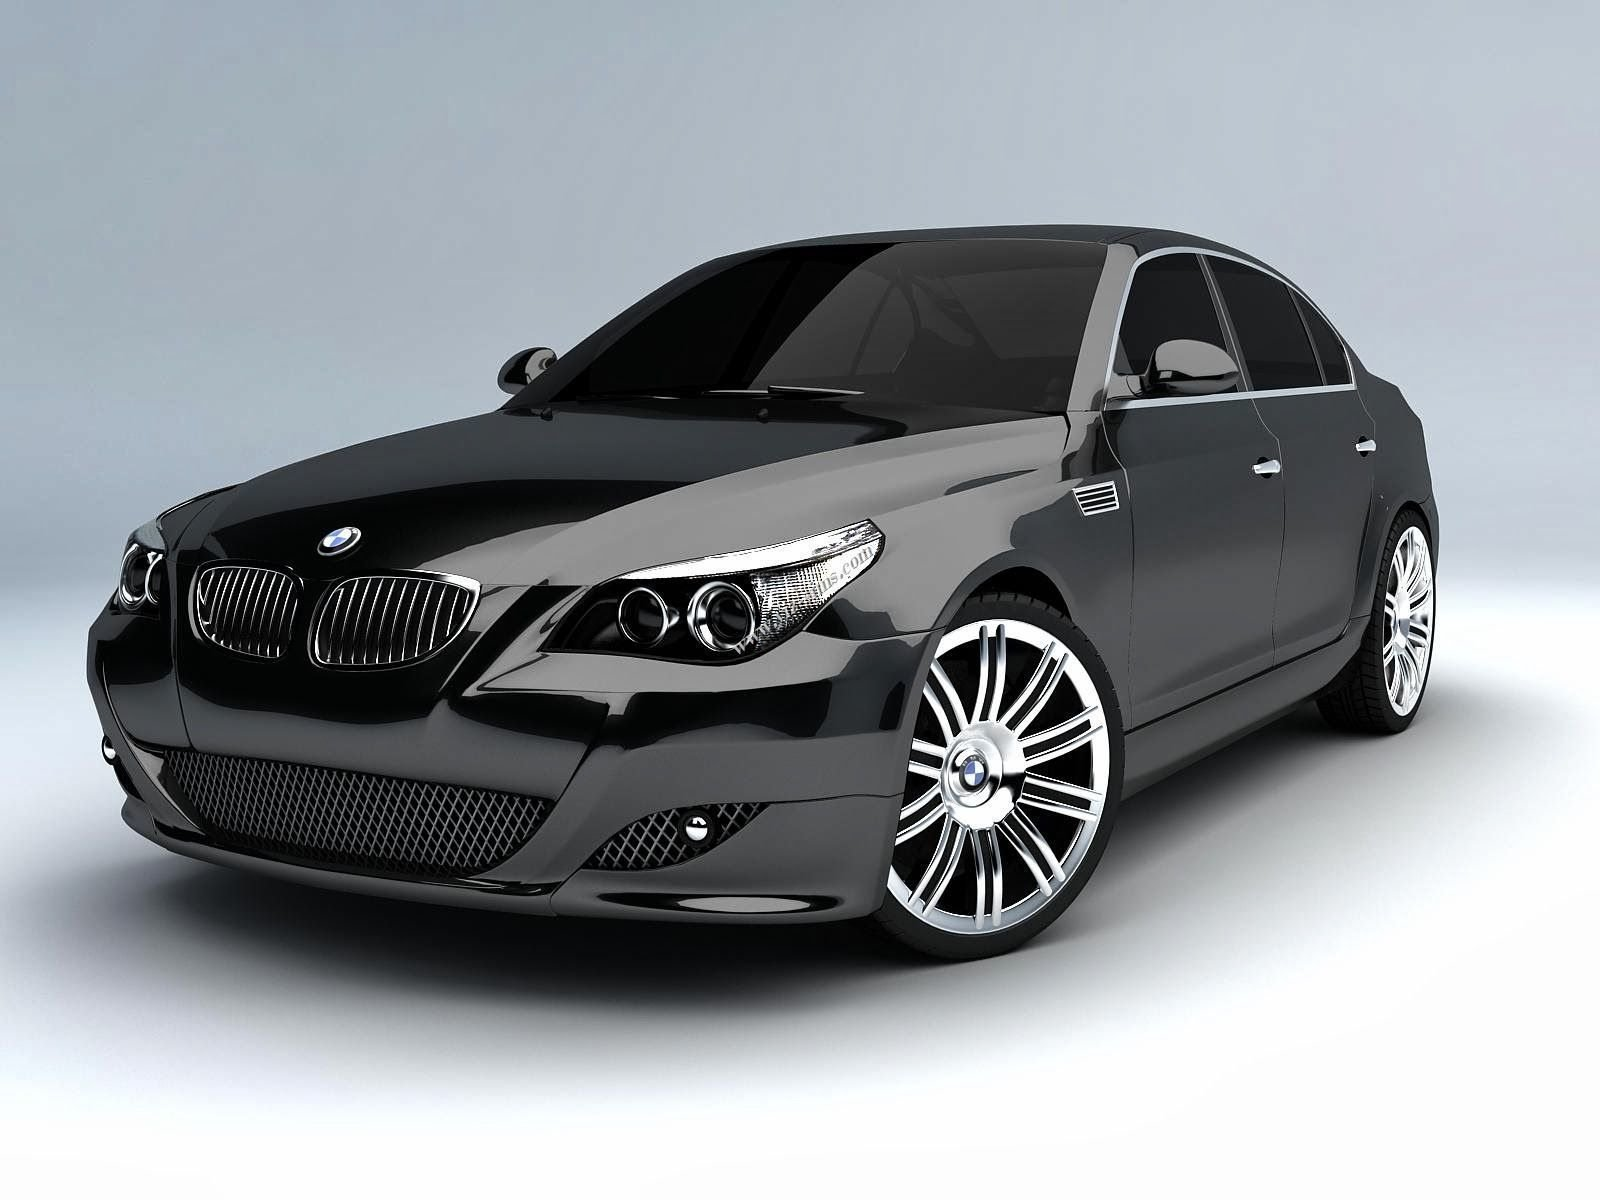 Latest Bmw Latest Car Model Cars Models Bmwcase Bmw Car And Free Download